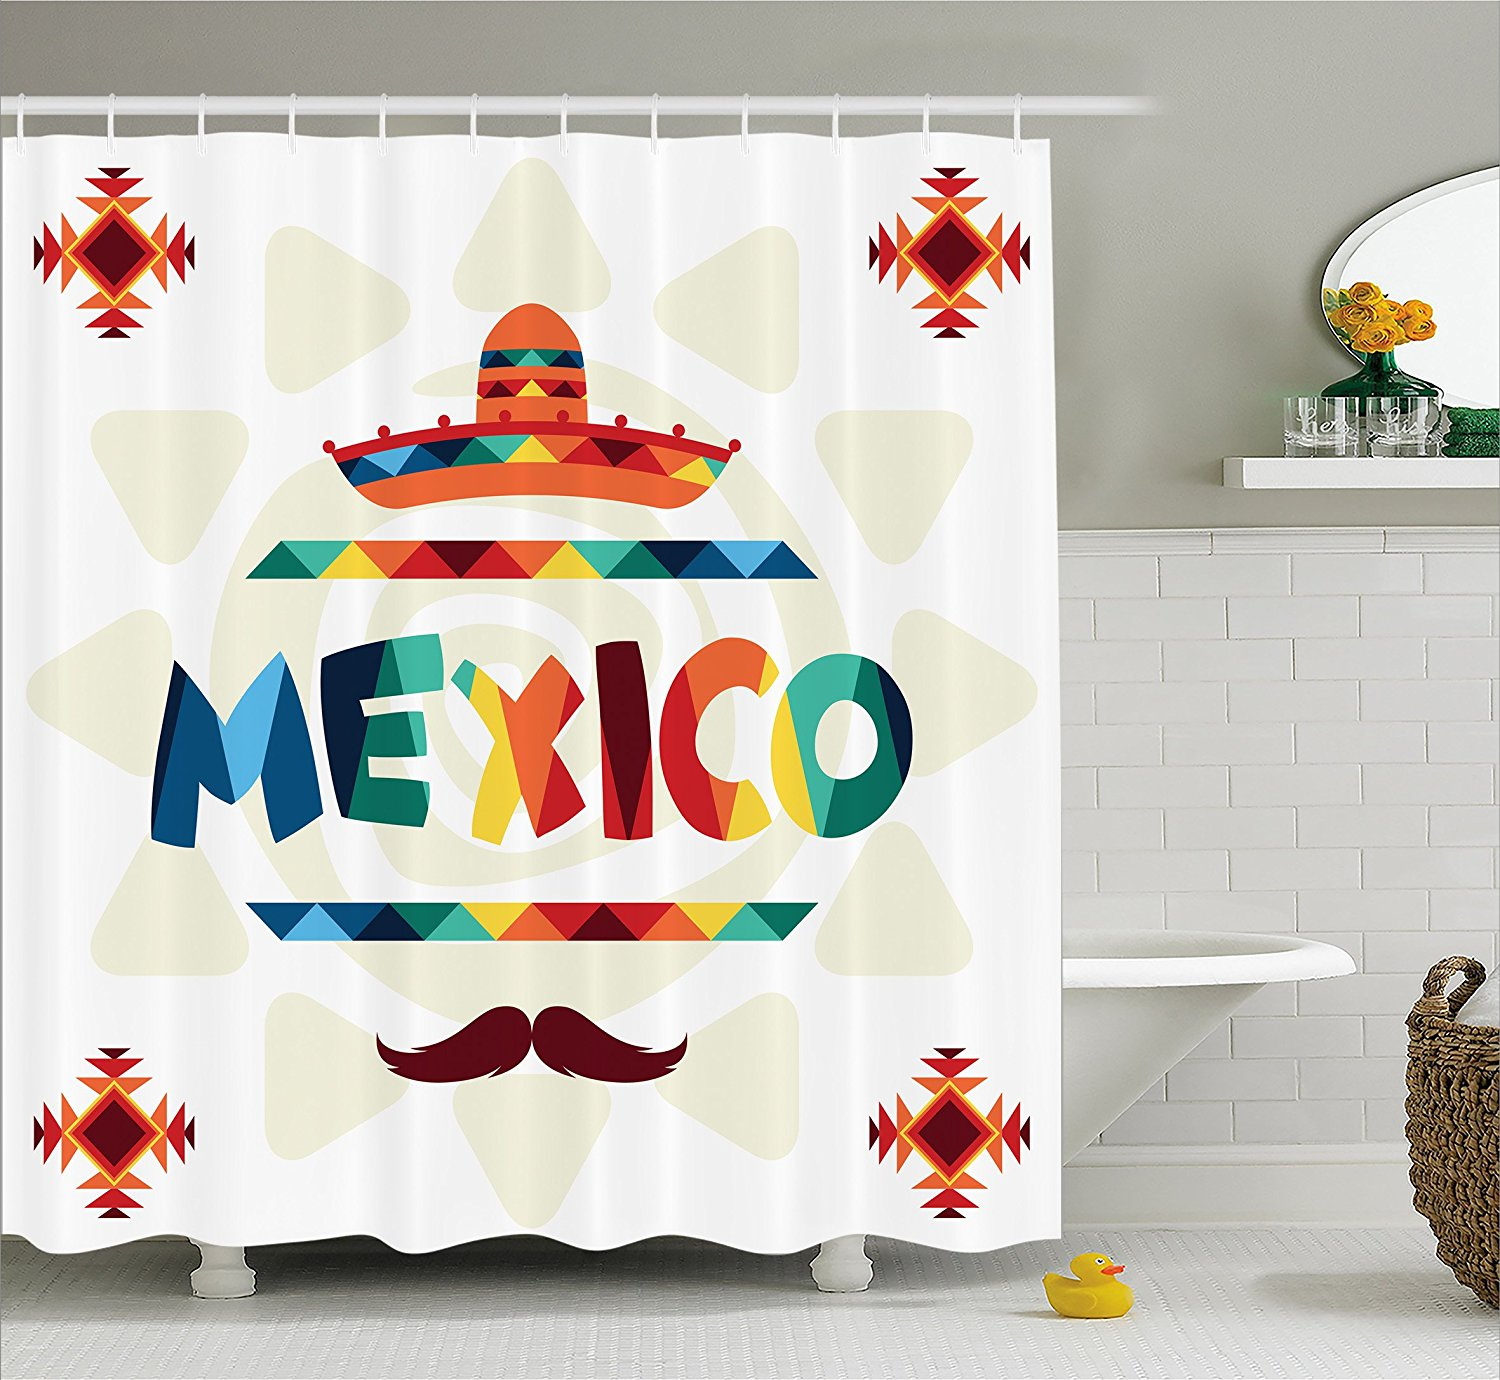 Merveilleux Mexican Decorations Shower Curtain By , Mexico Traditional Aztec Motifs And  Sombrero Straw Hat Moustache Graphic, Fabric Bathroom Decor Set.., By  Ambesonne